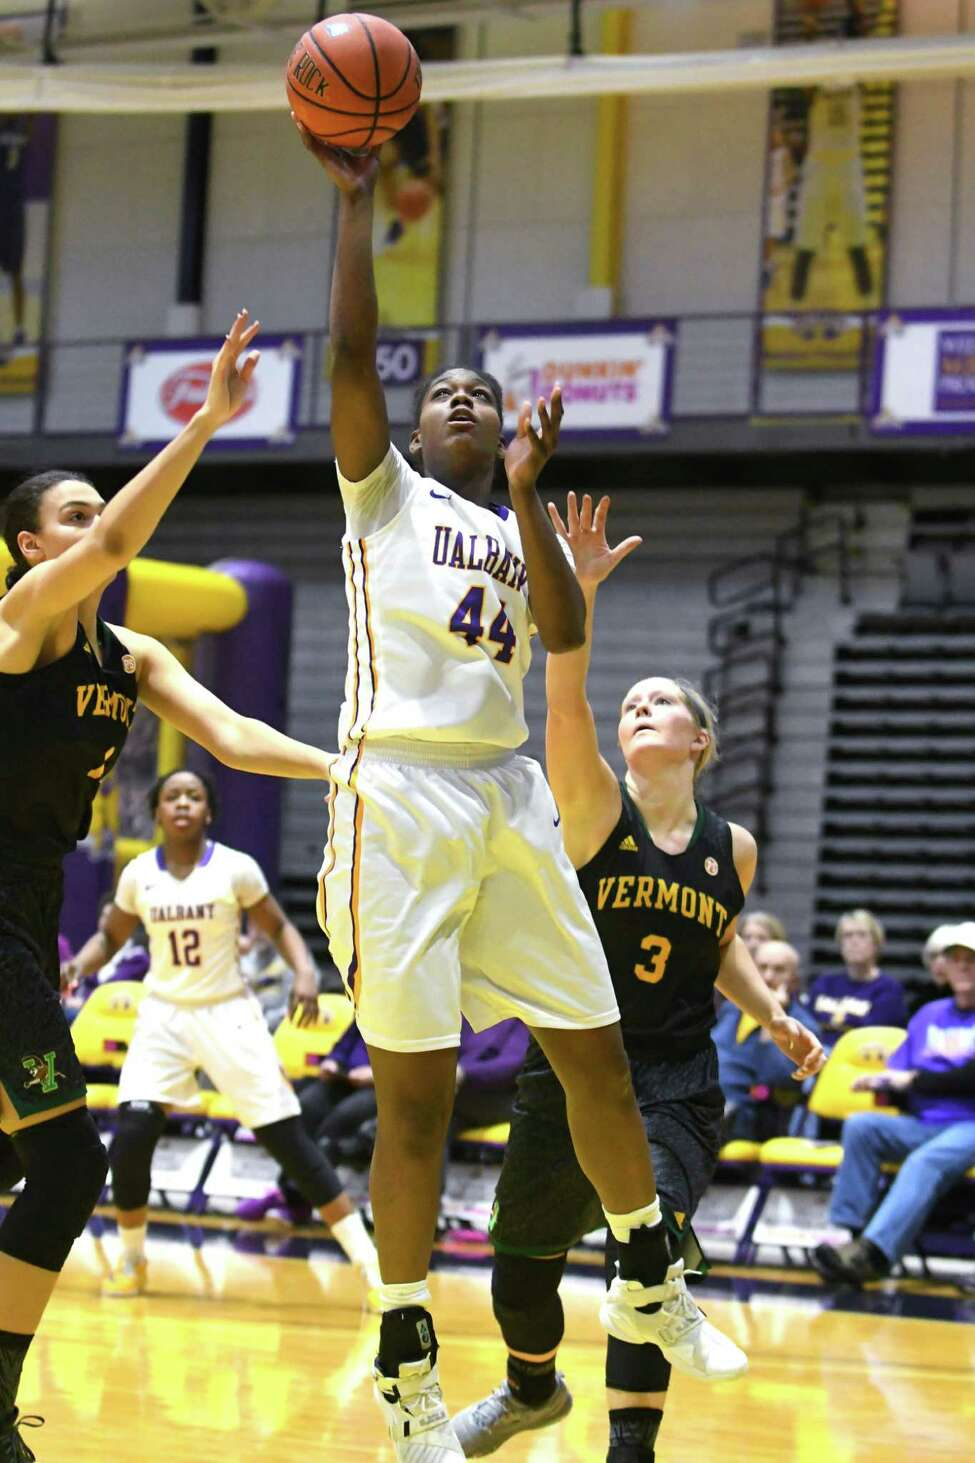 University at Albany's Chyanna Canada puts up a shot during a basketball game against Vermont at the SEFCU Arena on Thursday, Jan. 26, 2017 in Albany, N.Y. (Lori Van Buren / Times Union)